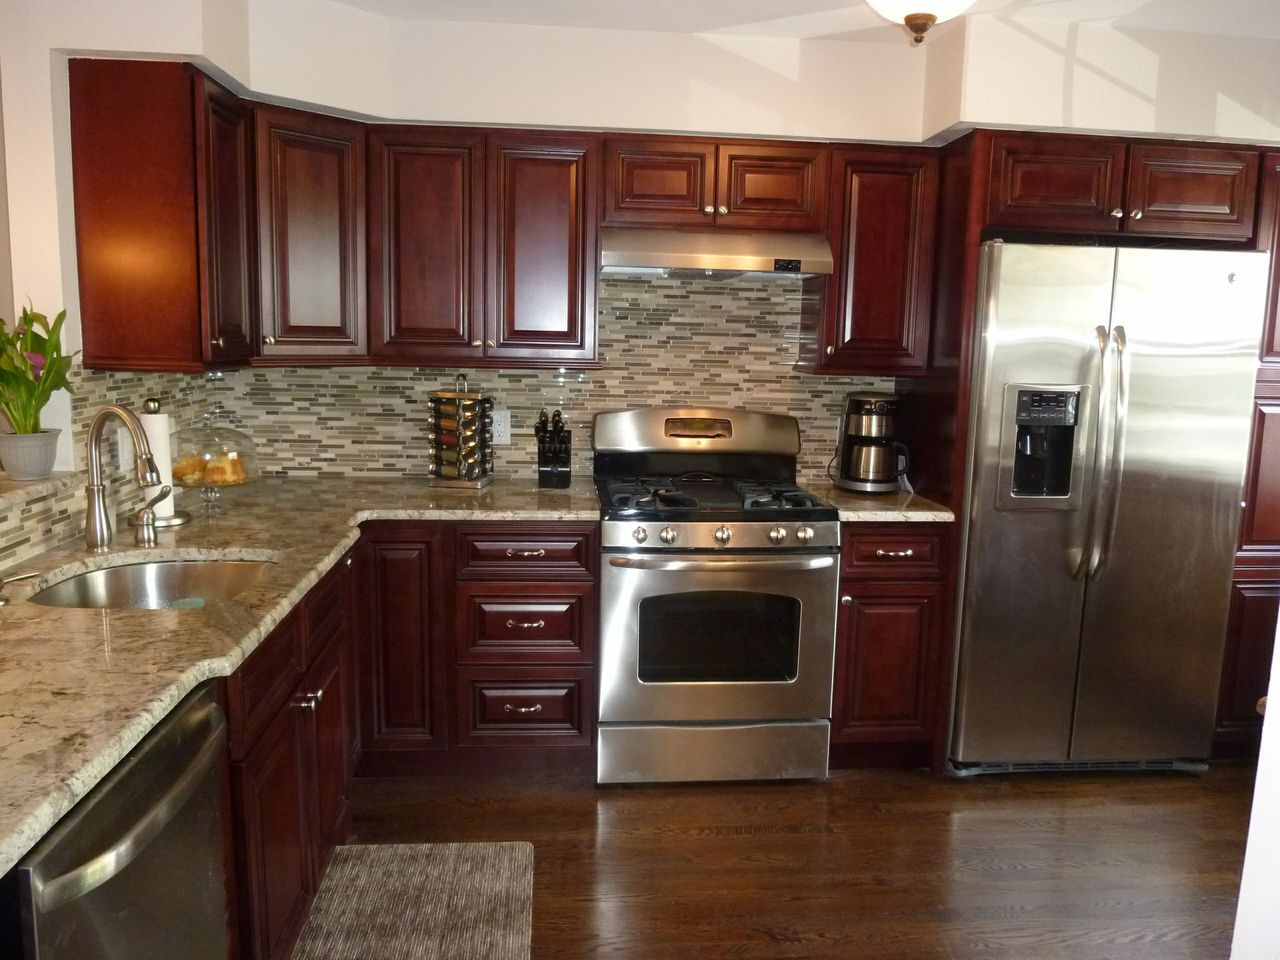 Modern Kitchen Stainless Steel Appliances Granite Counter Tops Tile Back Splash Mahogany